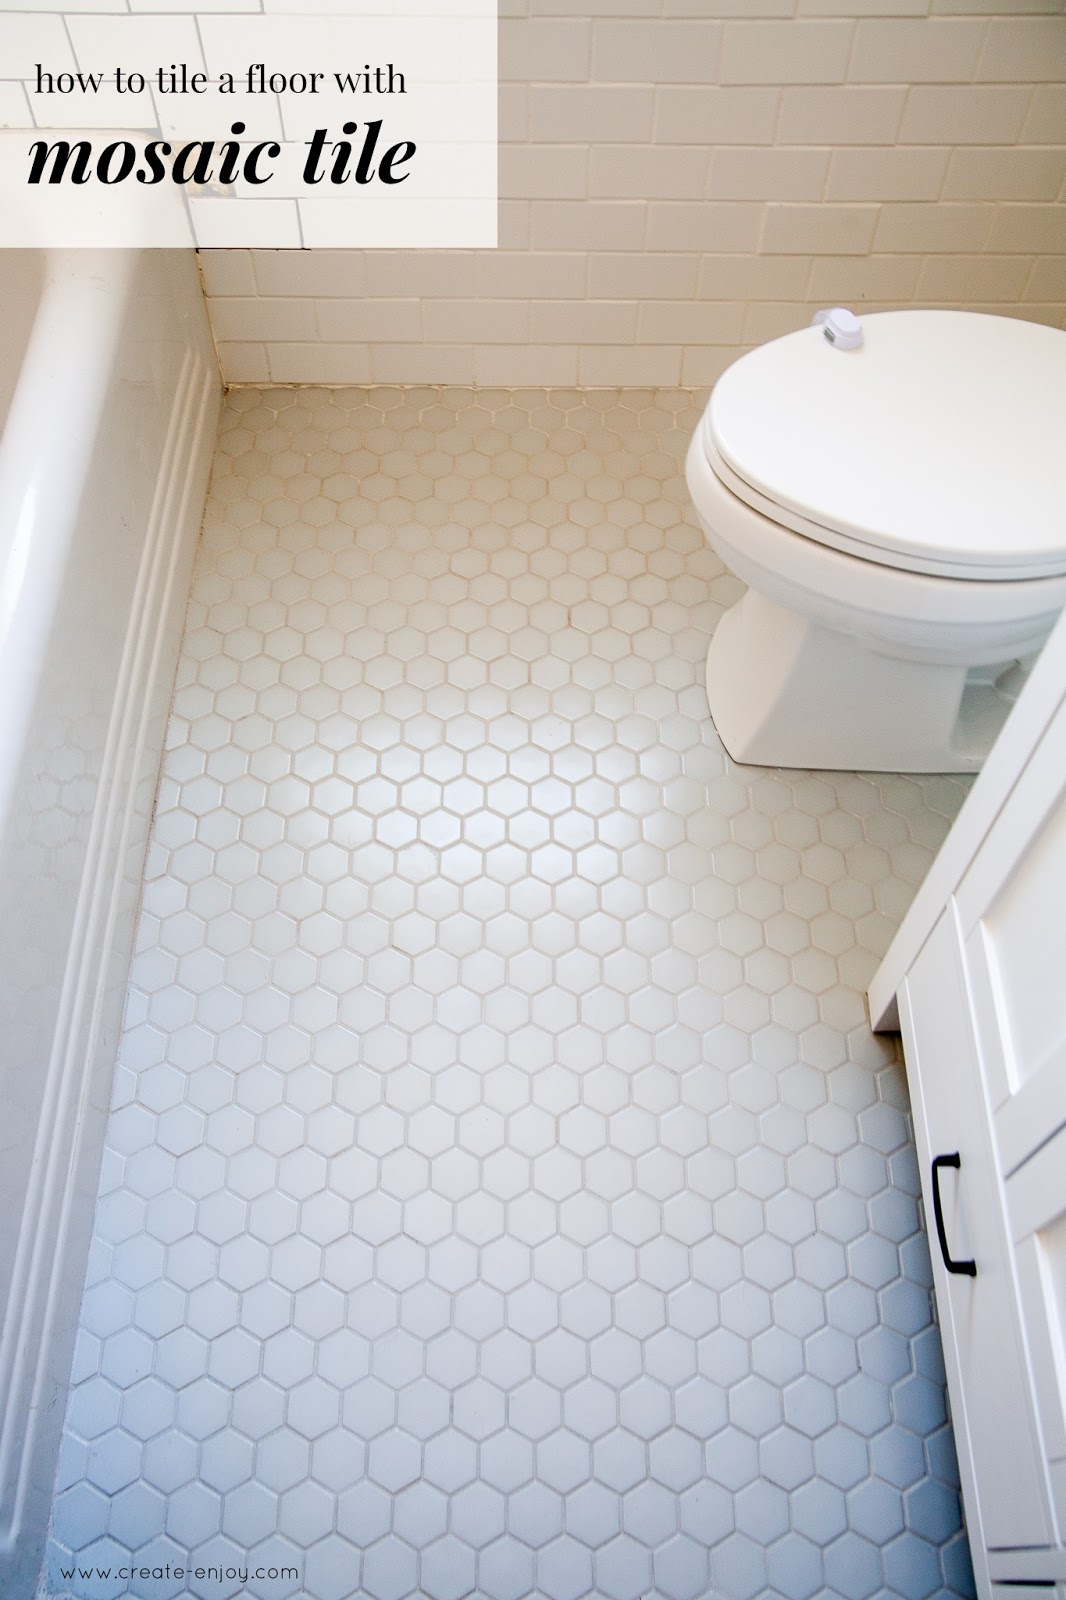 How To Lay Mosaic Tile Flooring Week 2 One Room Challenge Bathroom Reno With Hexagon Floor Create Enjoy